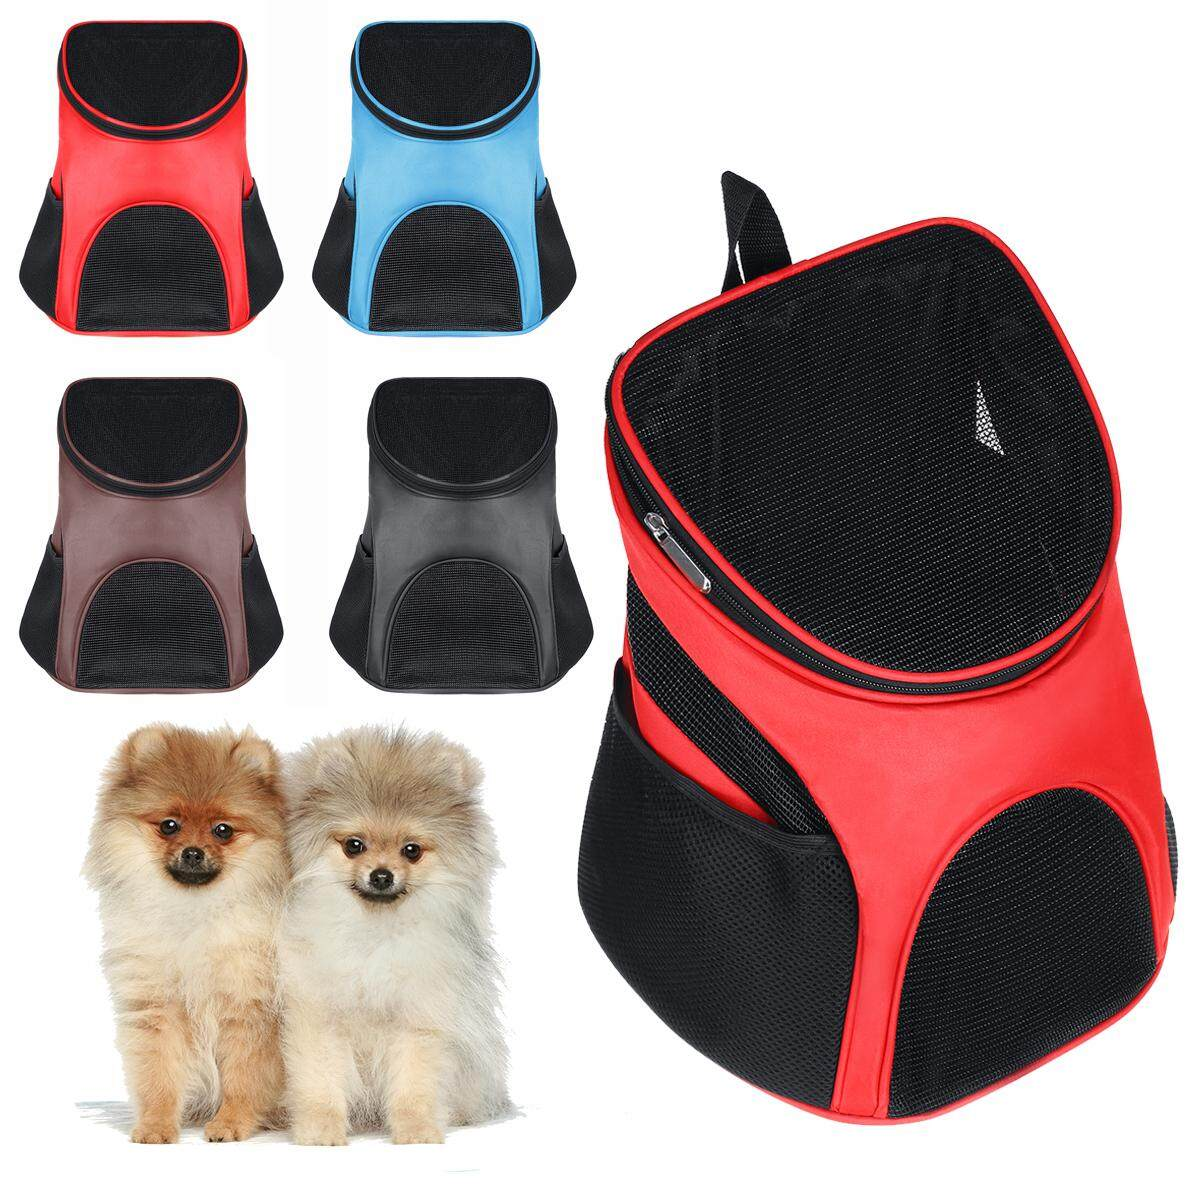 b9a26a21d4cf Dog Purses for sale - Carrier Purses for Dogs online brands, prices ...